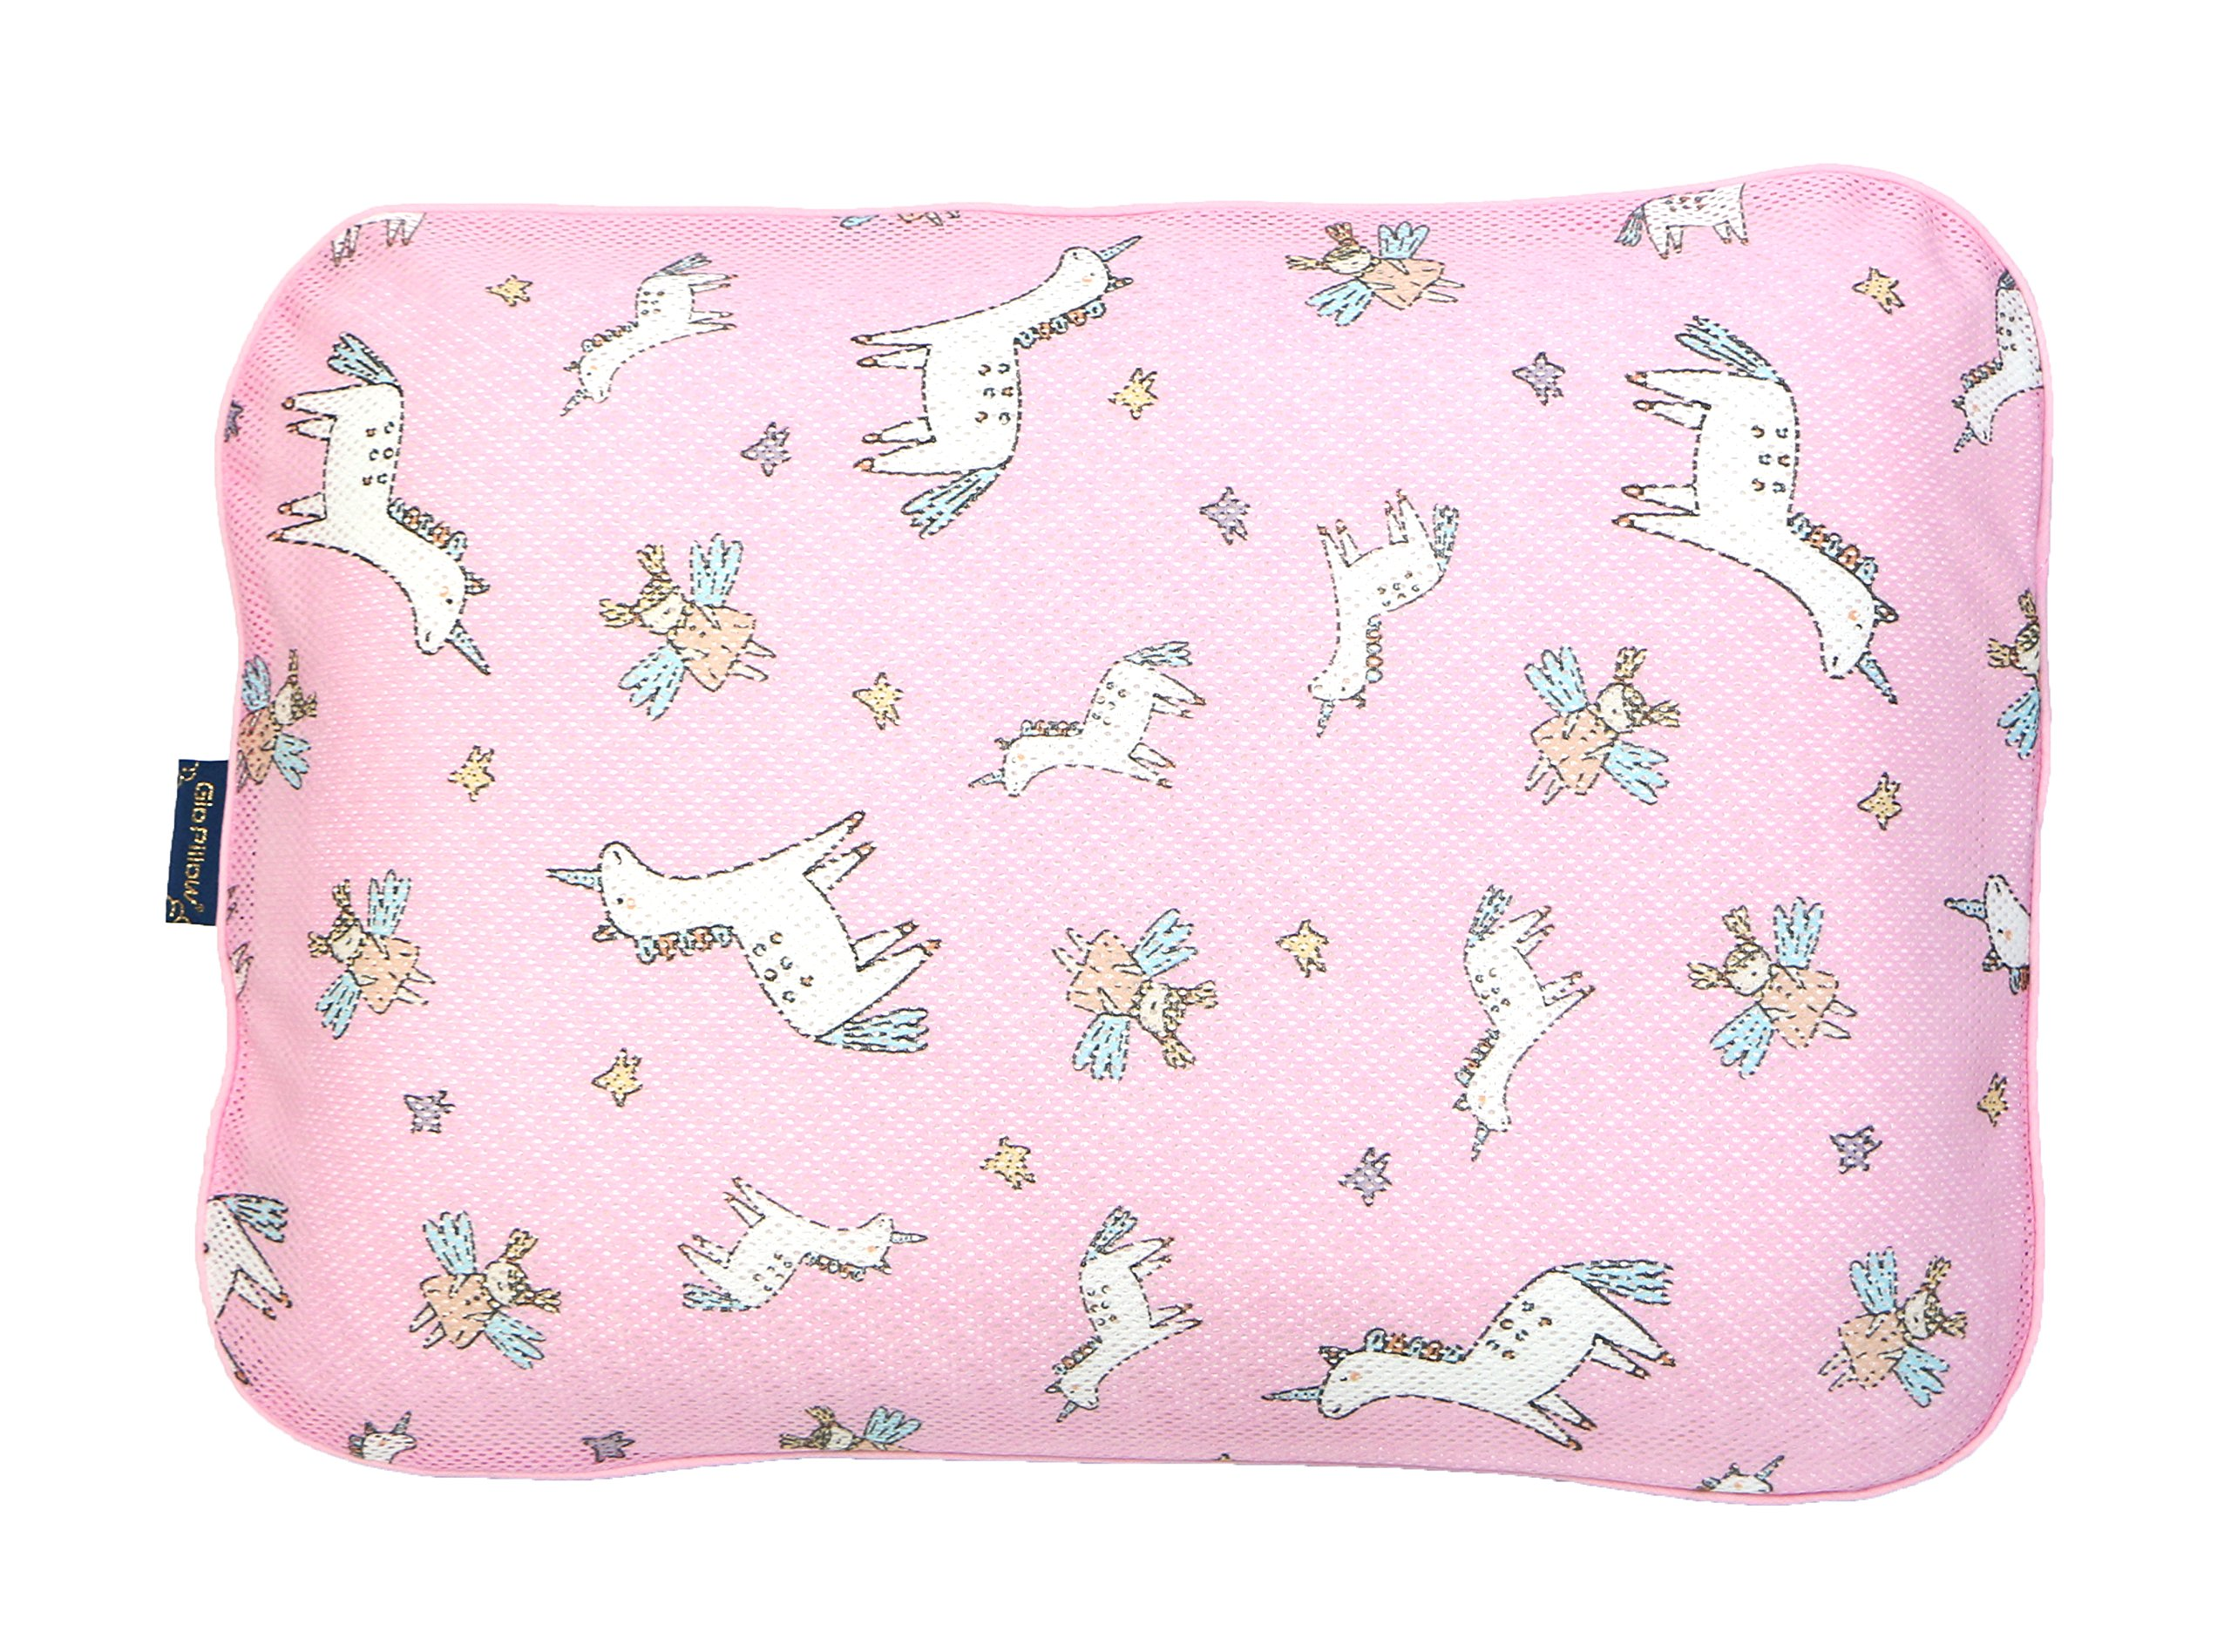 Gio Pillow 3D Air Mesh Baby Pillow, Head Shaping Pillow, Flat Head Syndrome Prevention [Unicorn/Large]